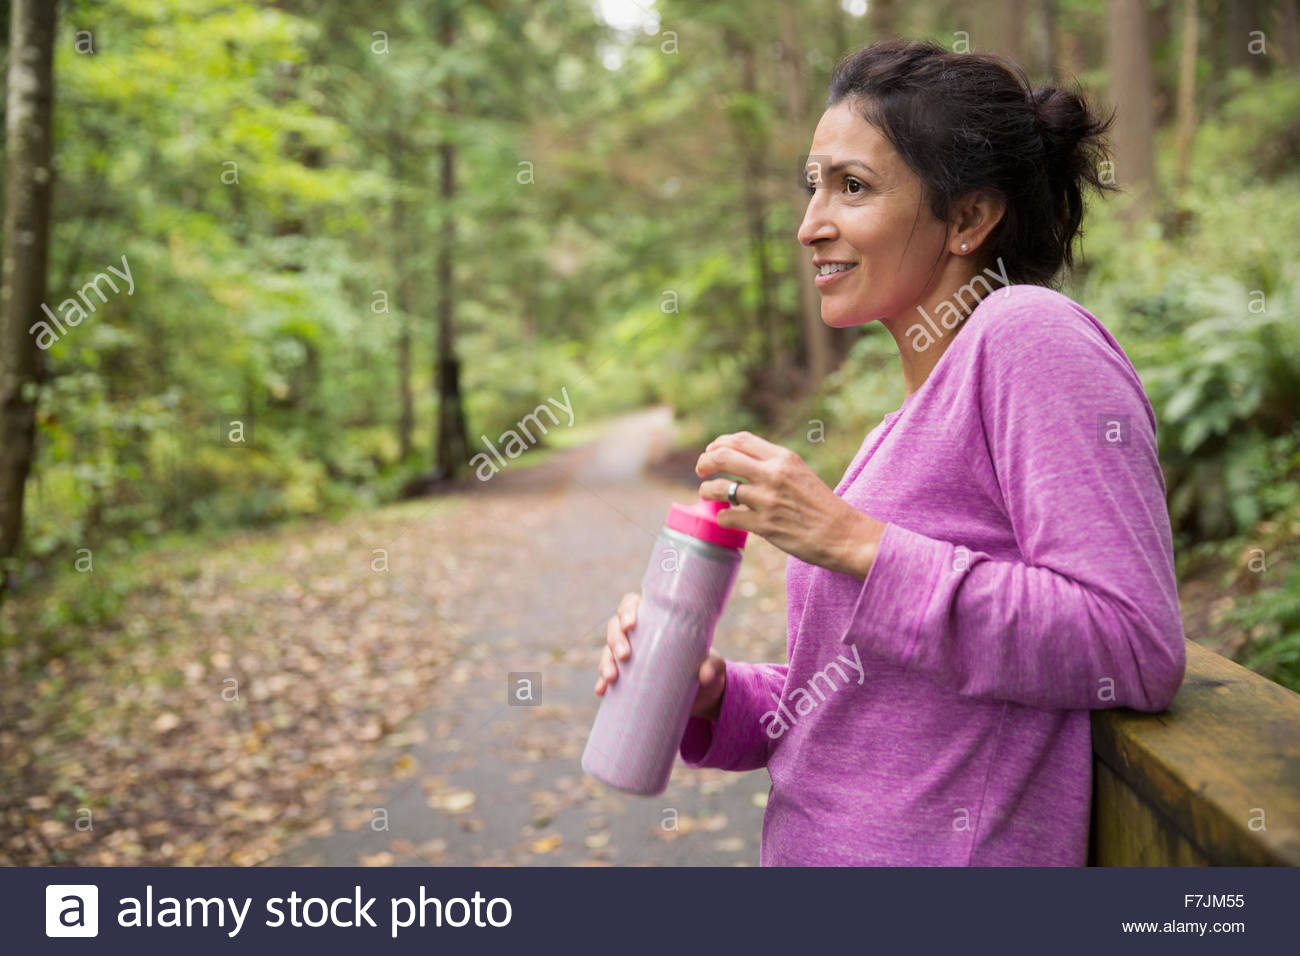 Smiling woman taking a break drinking water woods - Stock Image